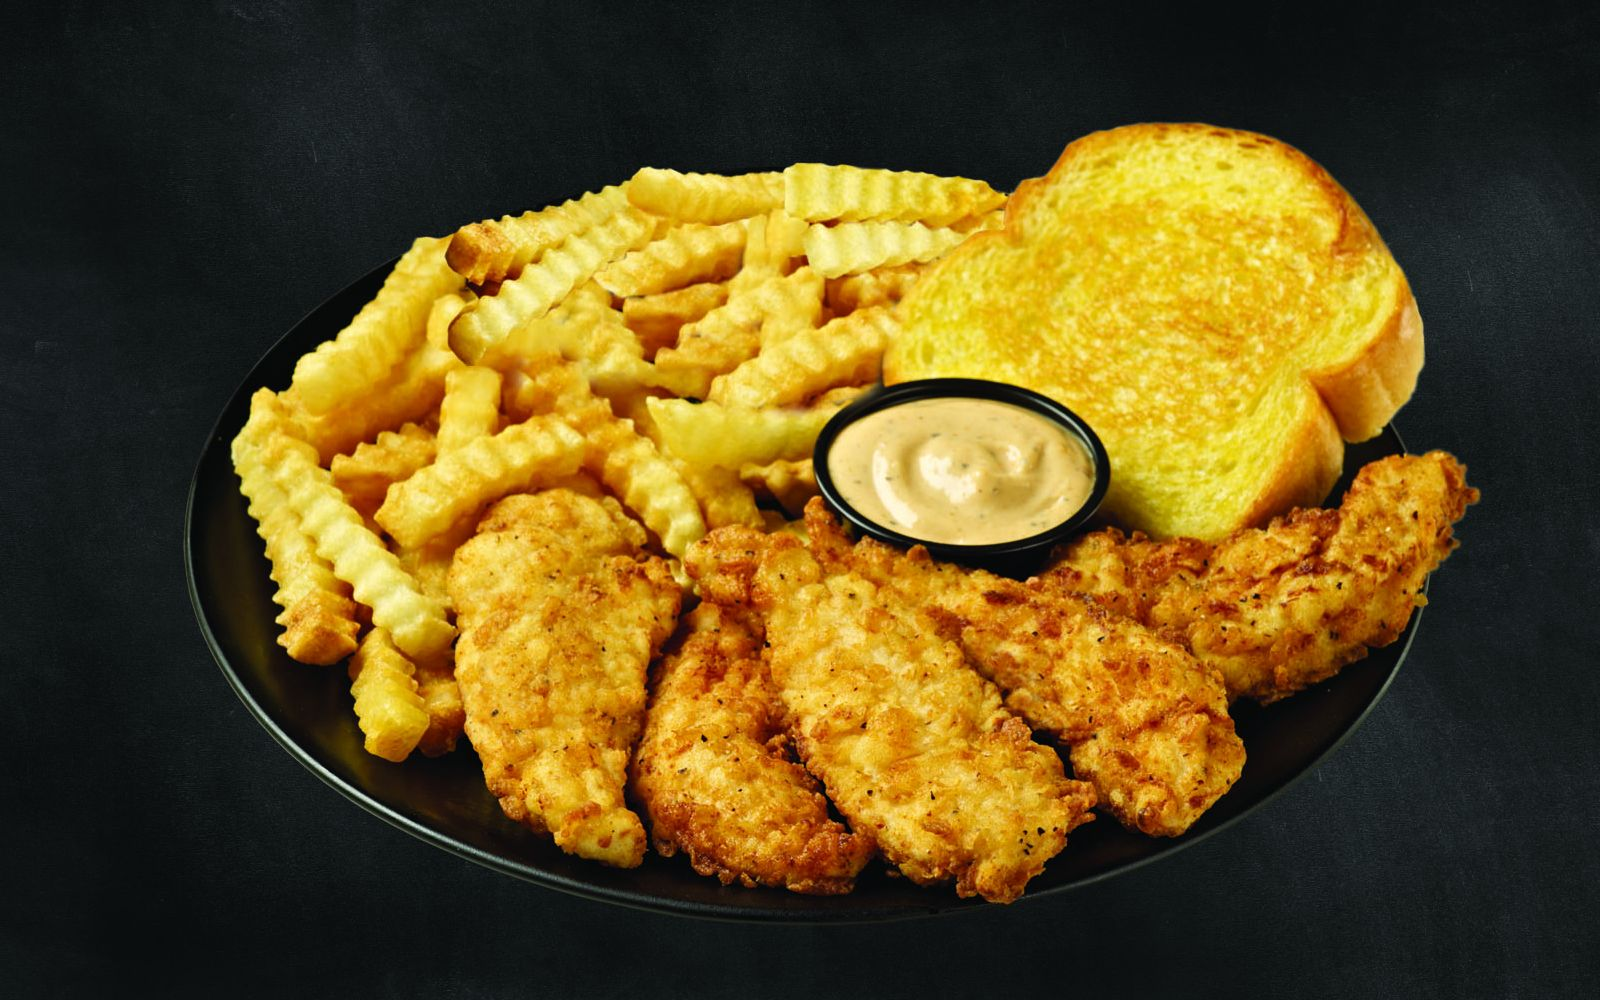 Huey Magoo's Chicken Tenders Announces Partnership With Aramark To Open New UCF Student Union Location